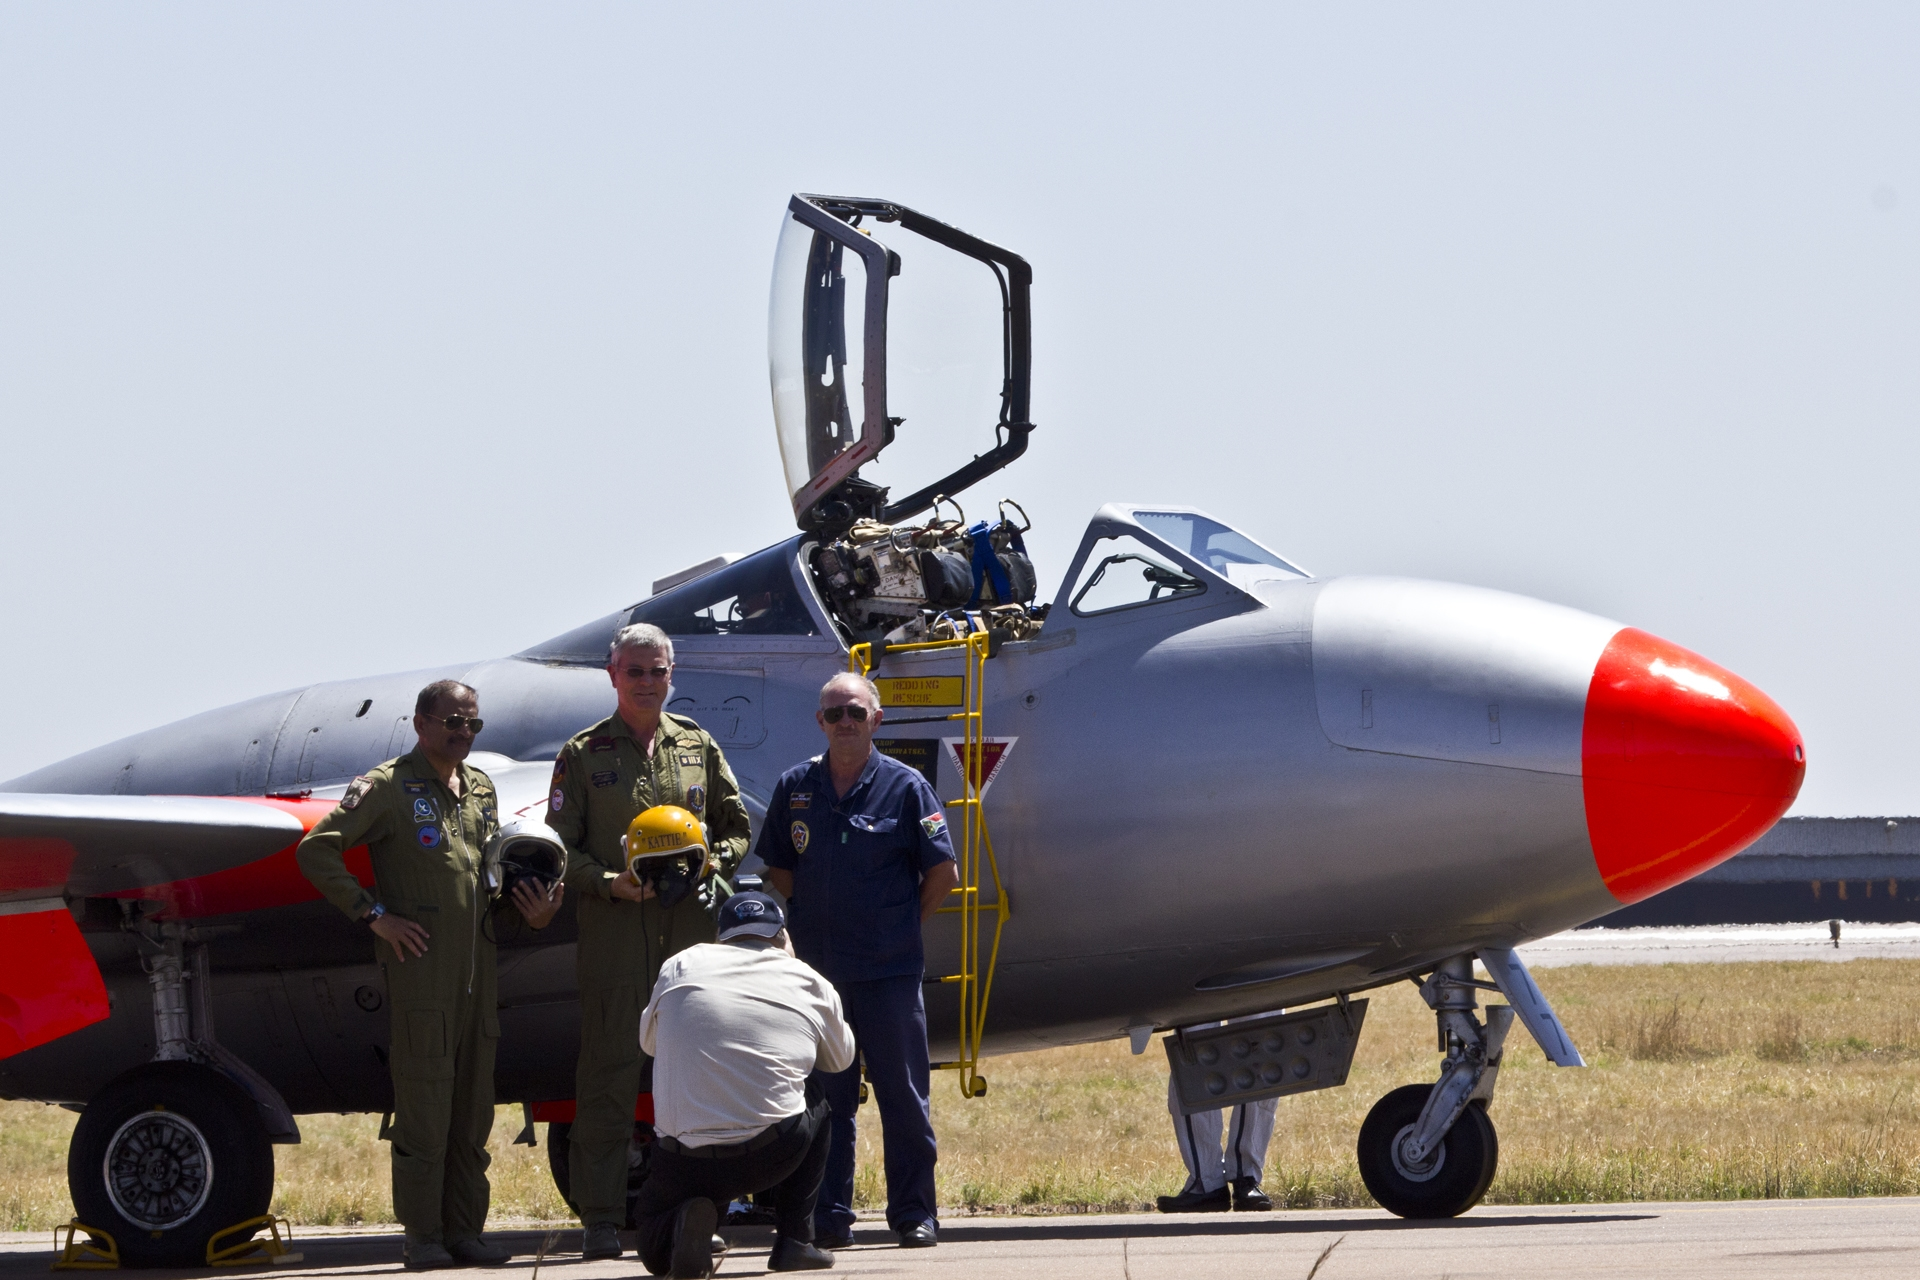 General of the South African Airforce